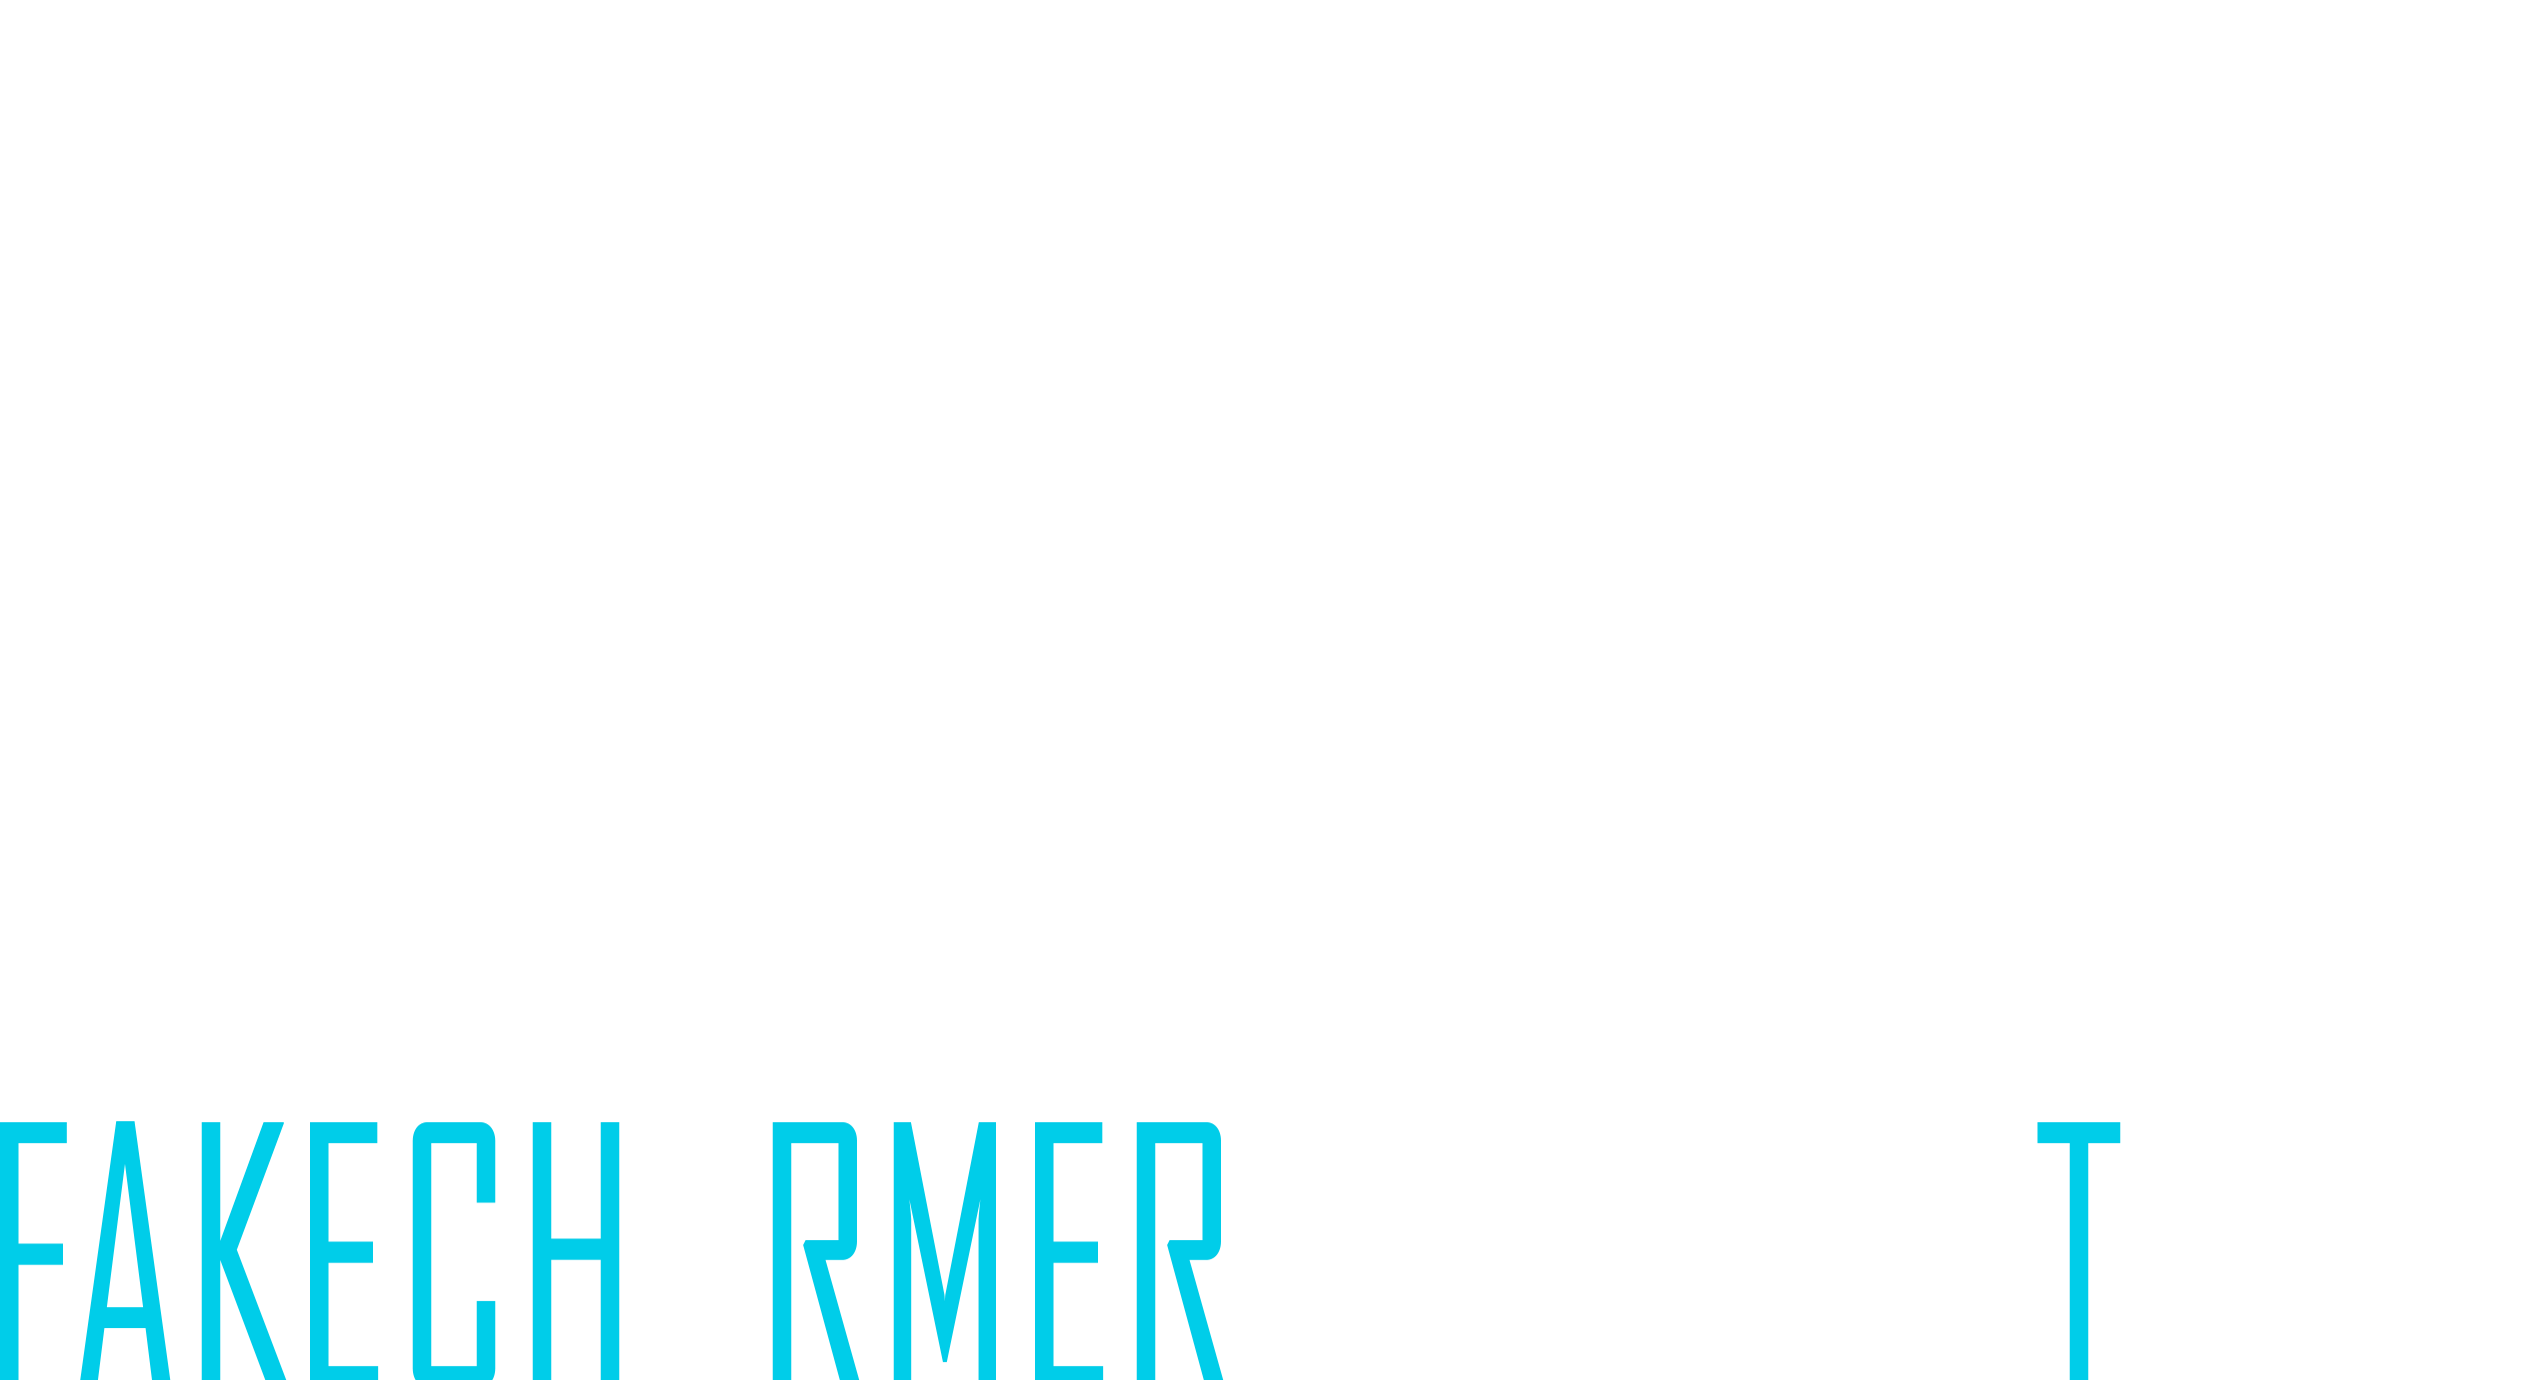 FakeCharmer Productions